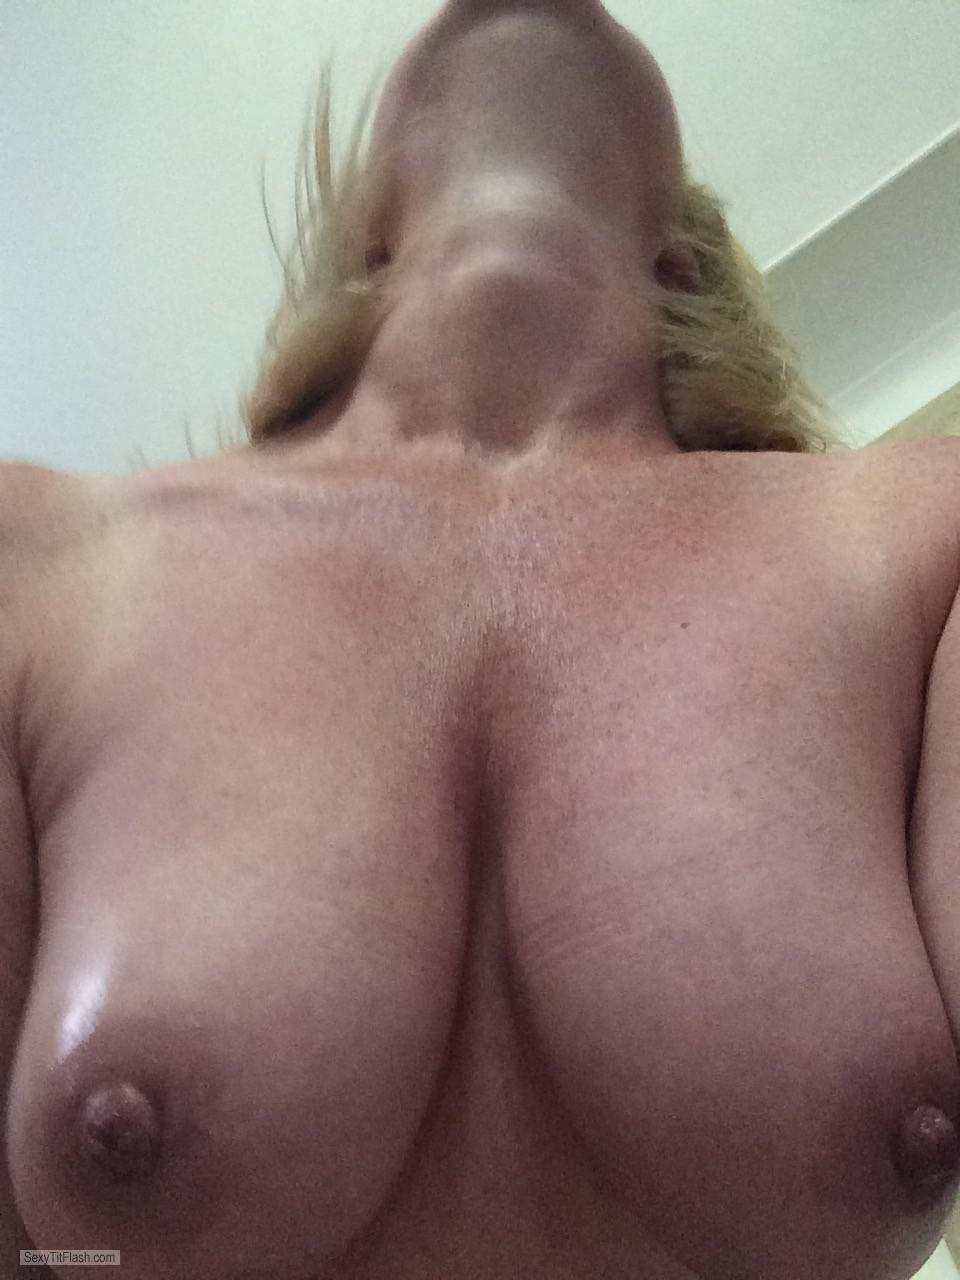 Medium Tits Of My Wife Tilfie